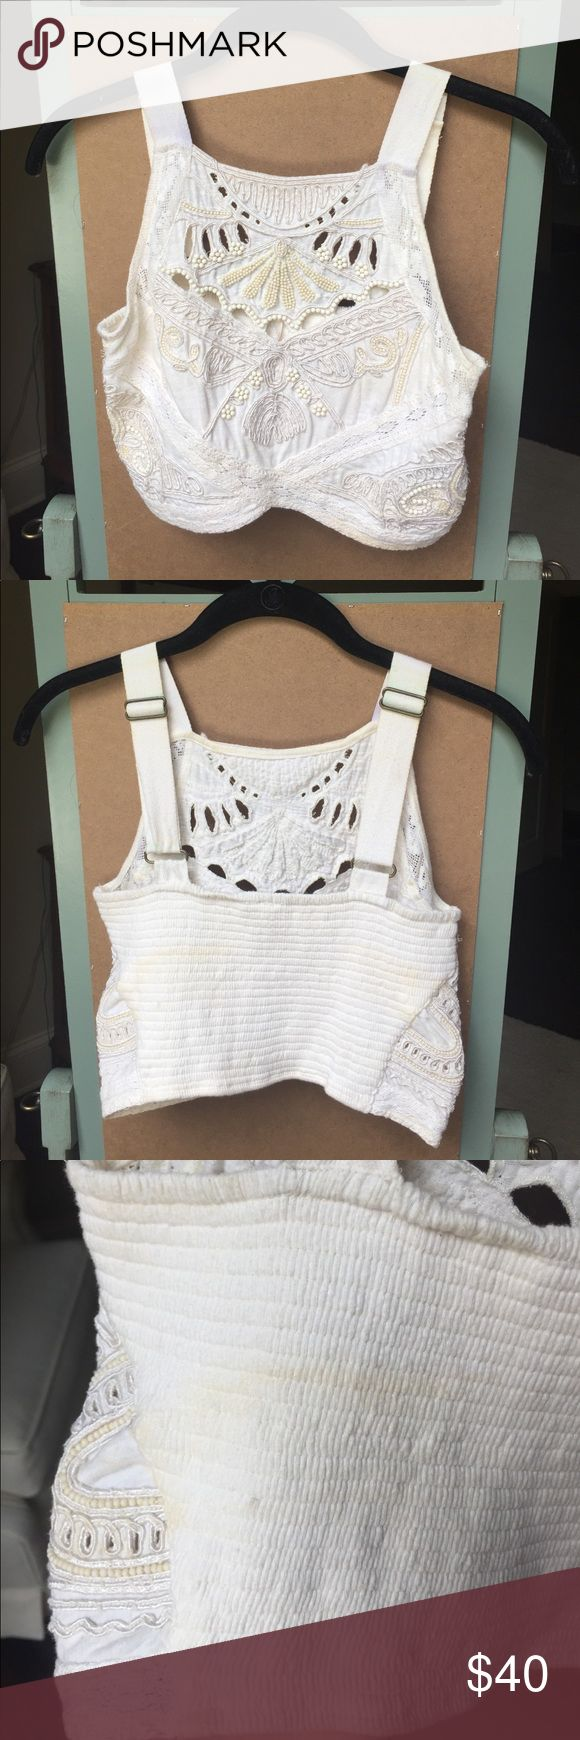 Free people beaded crop top Free people hand-beaded crop top! A really unique top! Wore it to a music festival once, so it has some staining on it (see in photos). Free People Tops Crop Tops